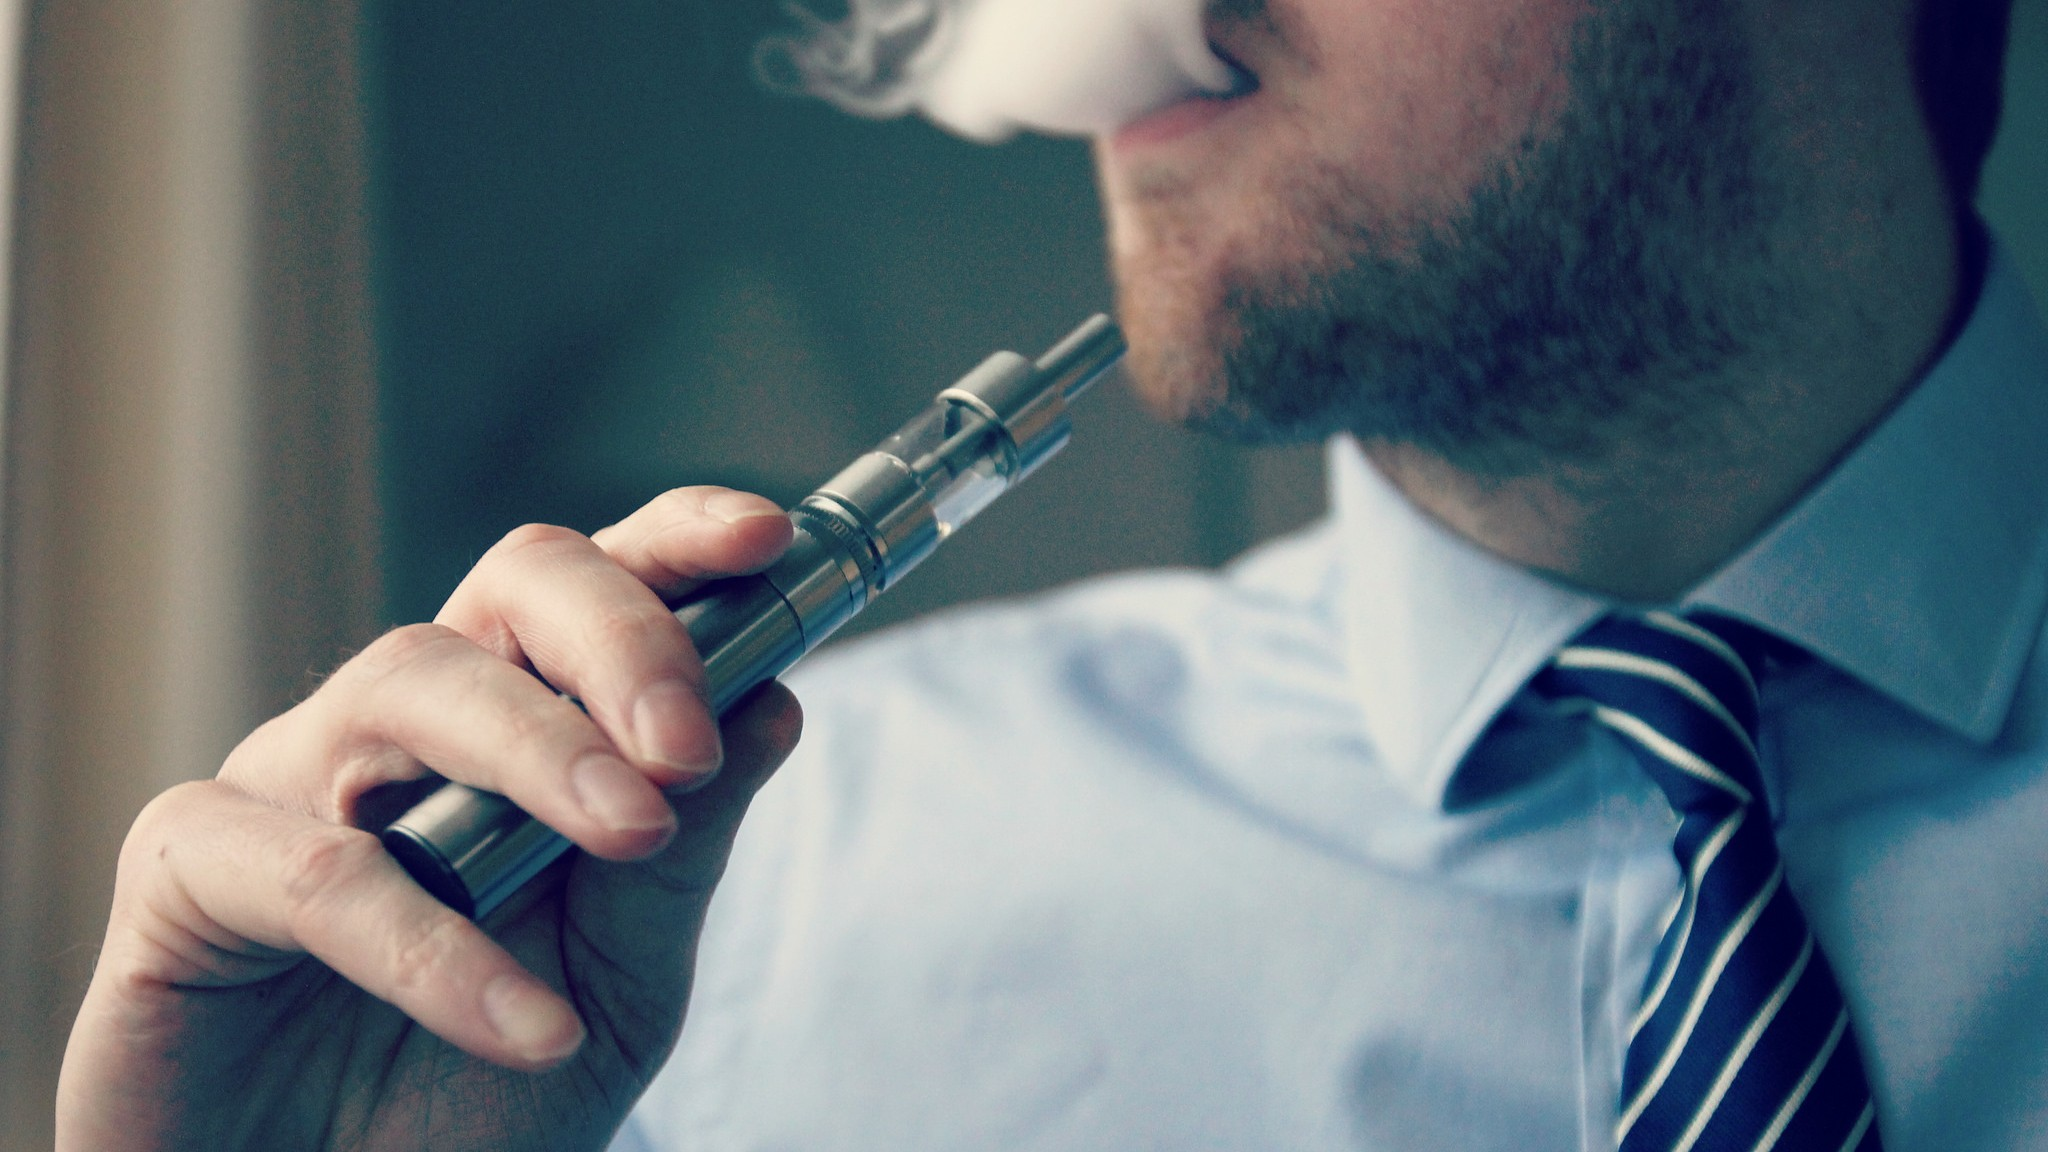 Doctors Are Giving Mixed Messages About Vaping